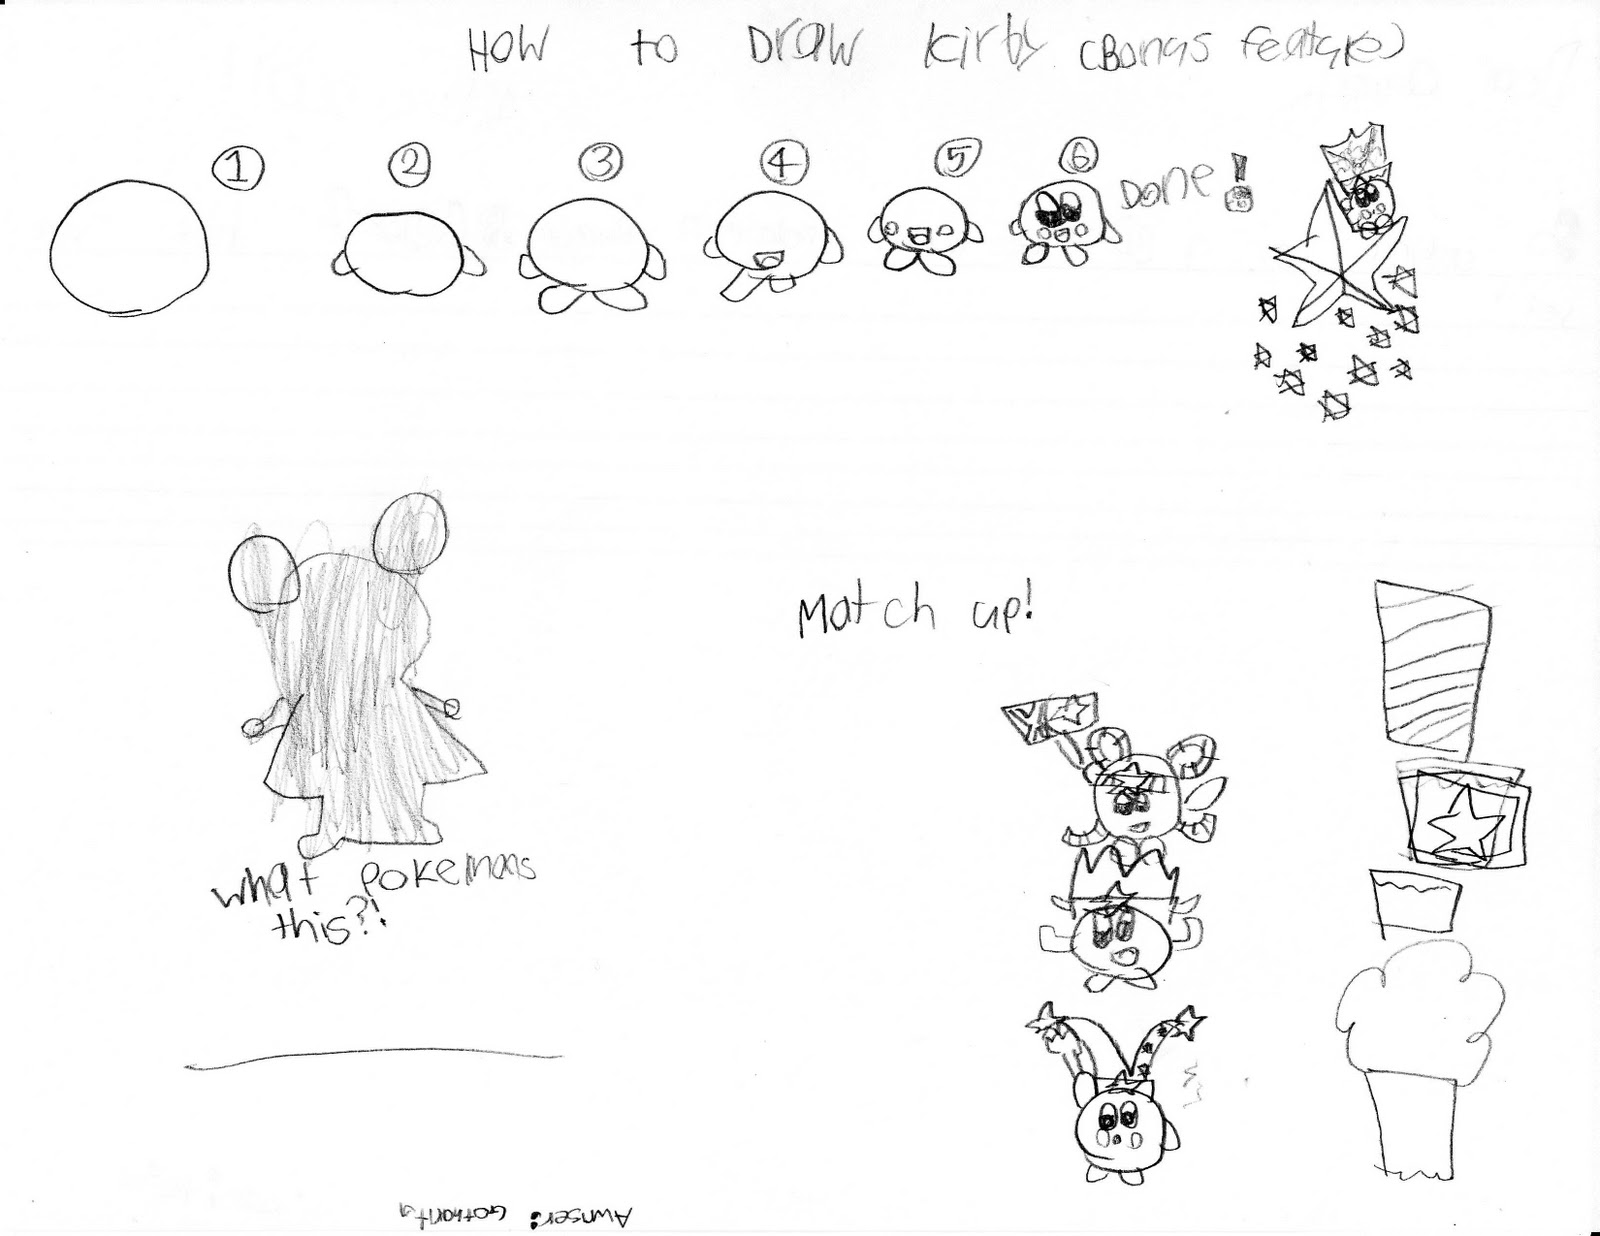 how to draw a kirby kirby sketches by heiseigoji91 on deviantart how kirby a to draw